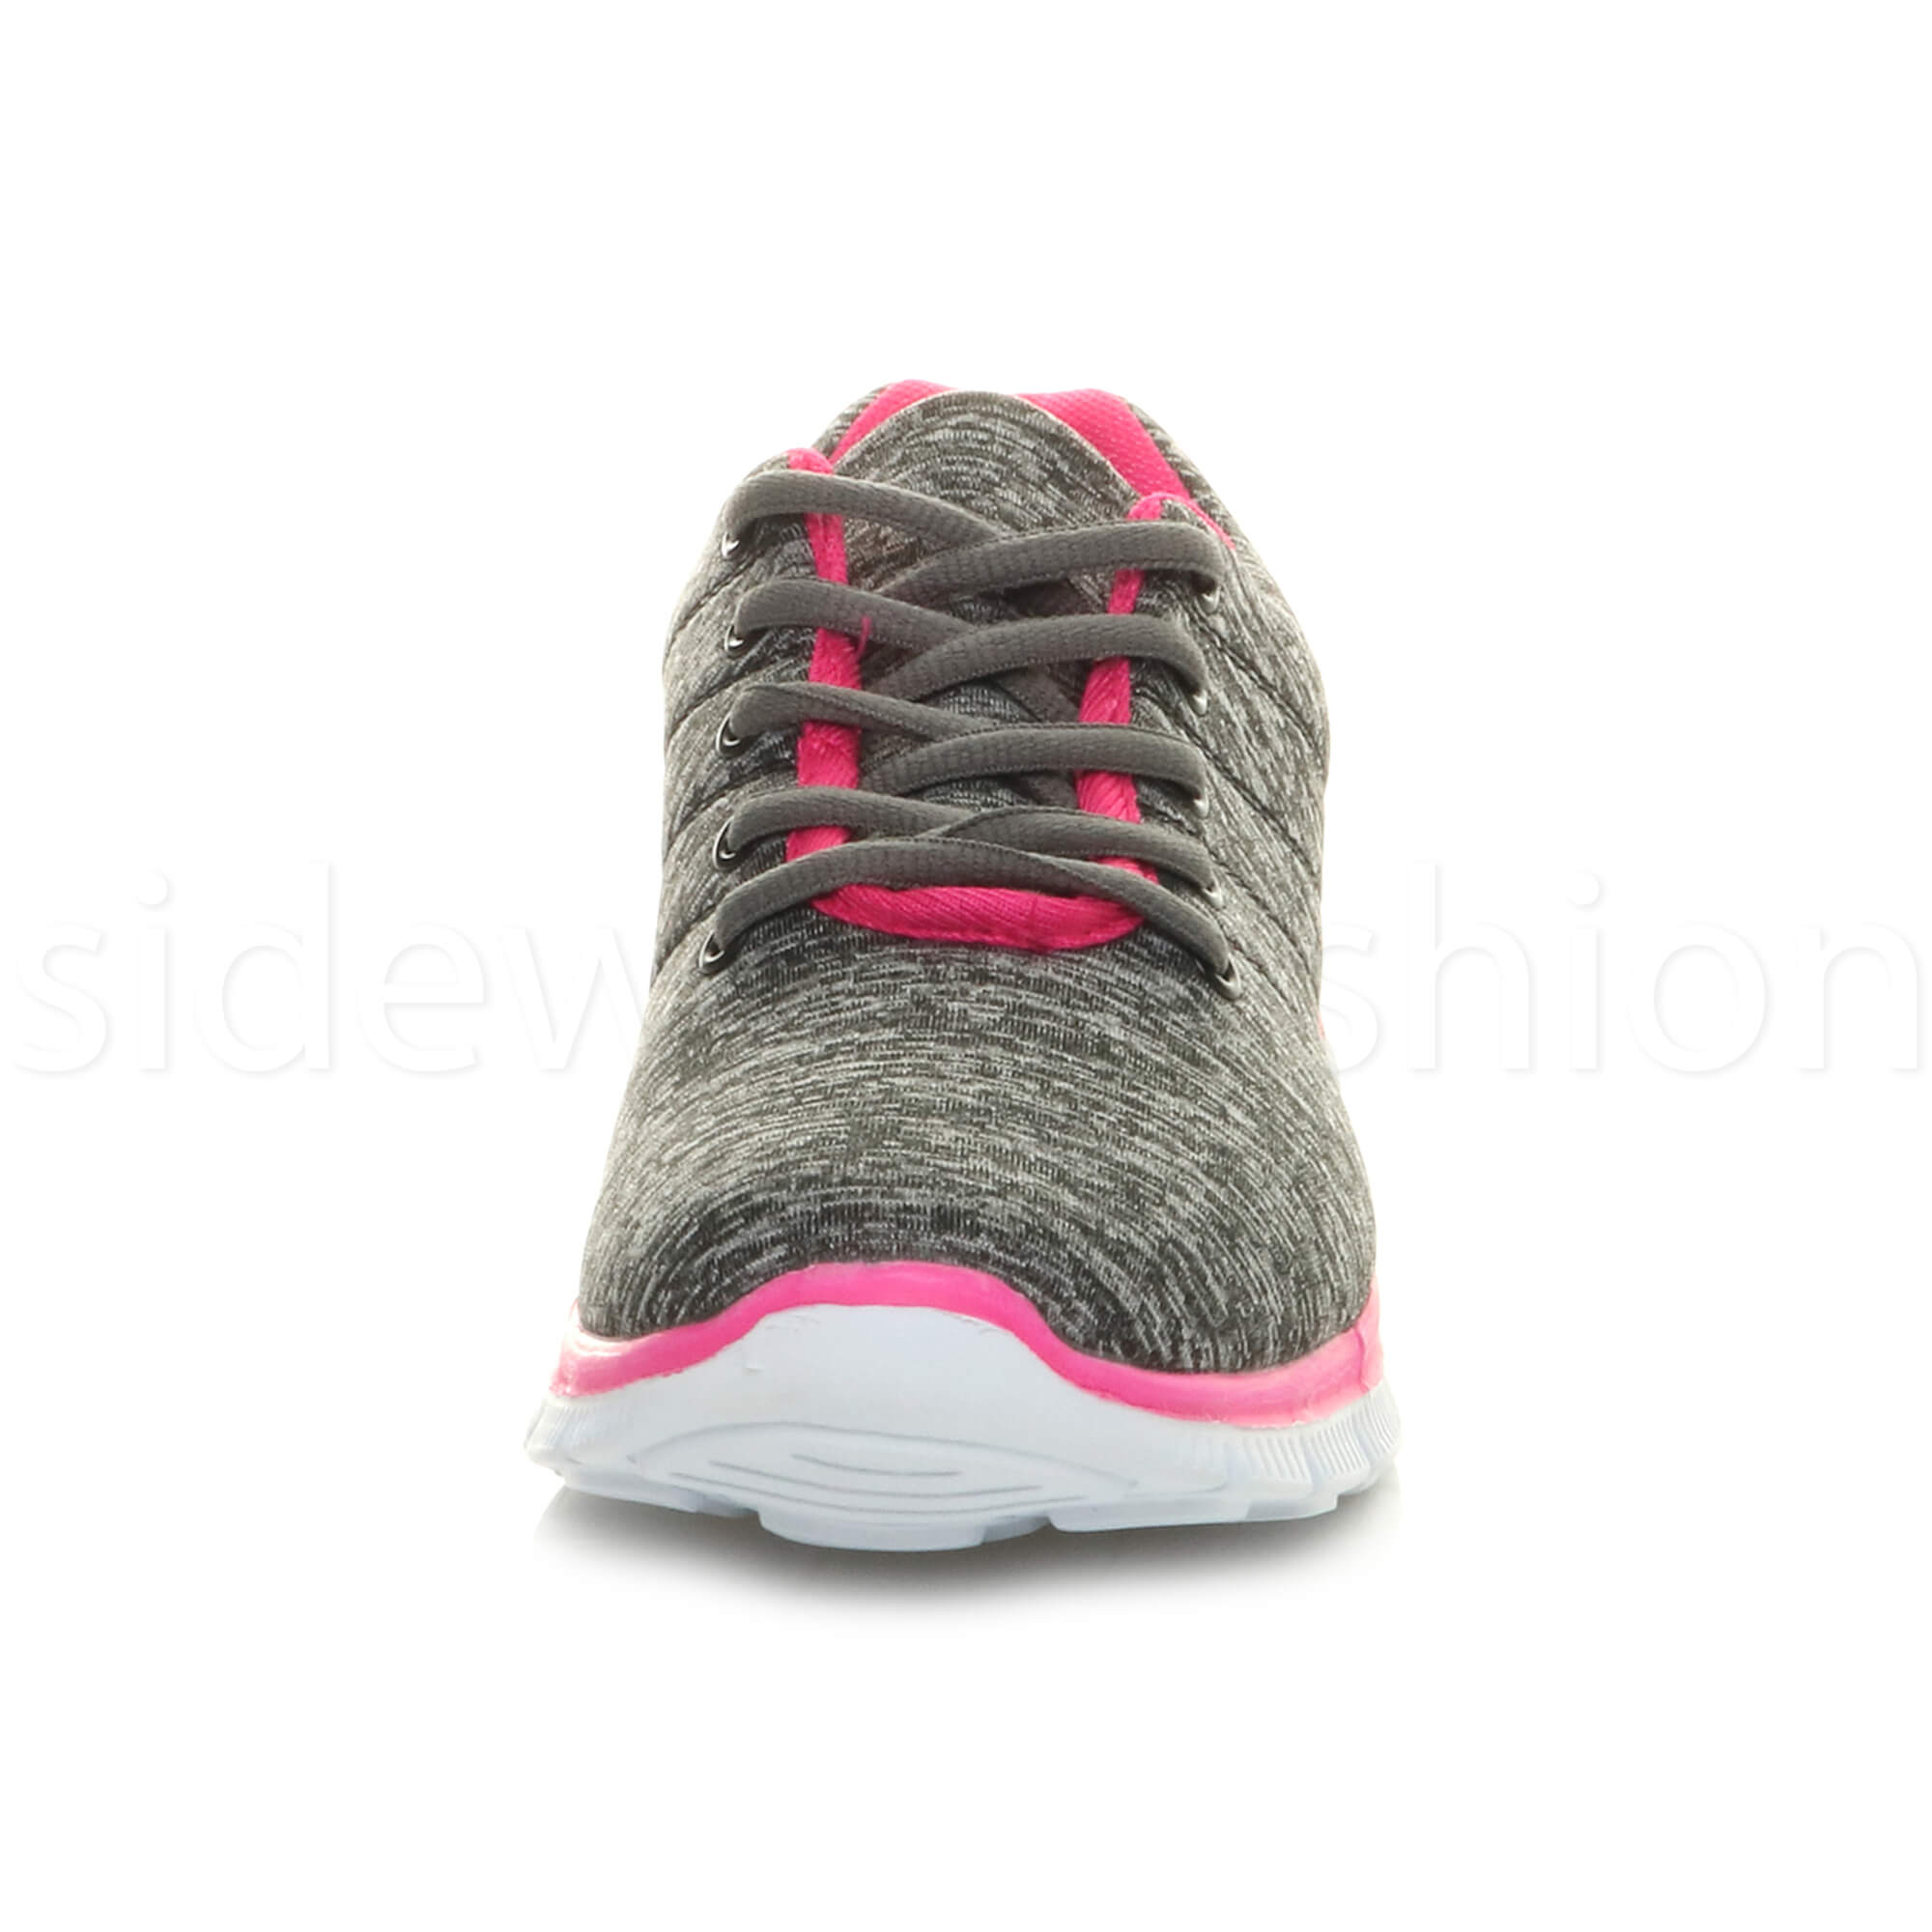 Womens-ladies-comfort-memory-foam-lace-up-trainers-activewear-sneakers-gym-shoes thumbnail 61